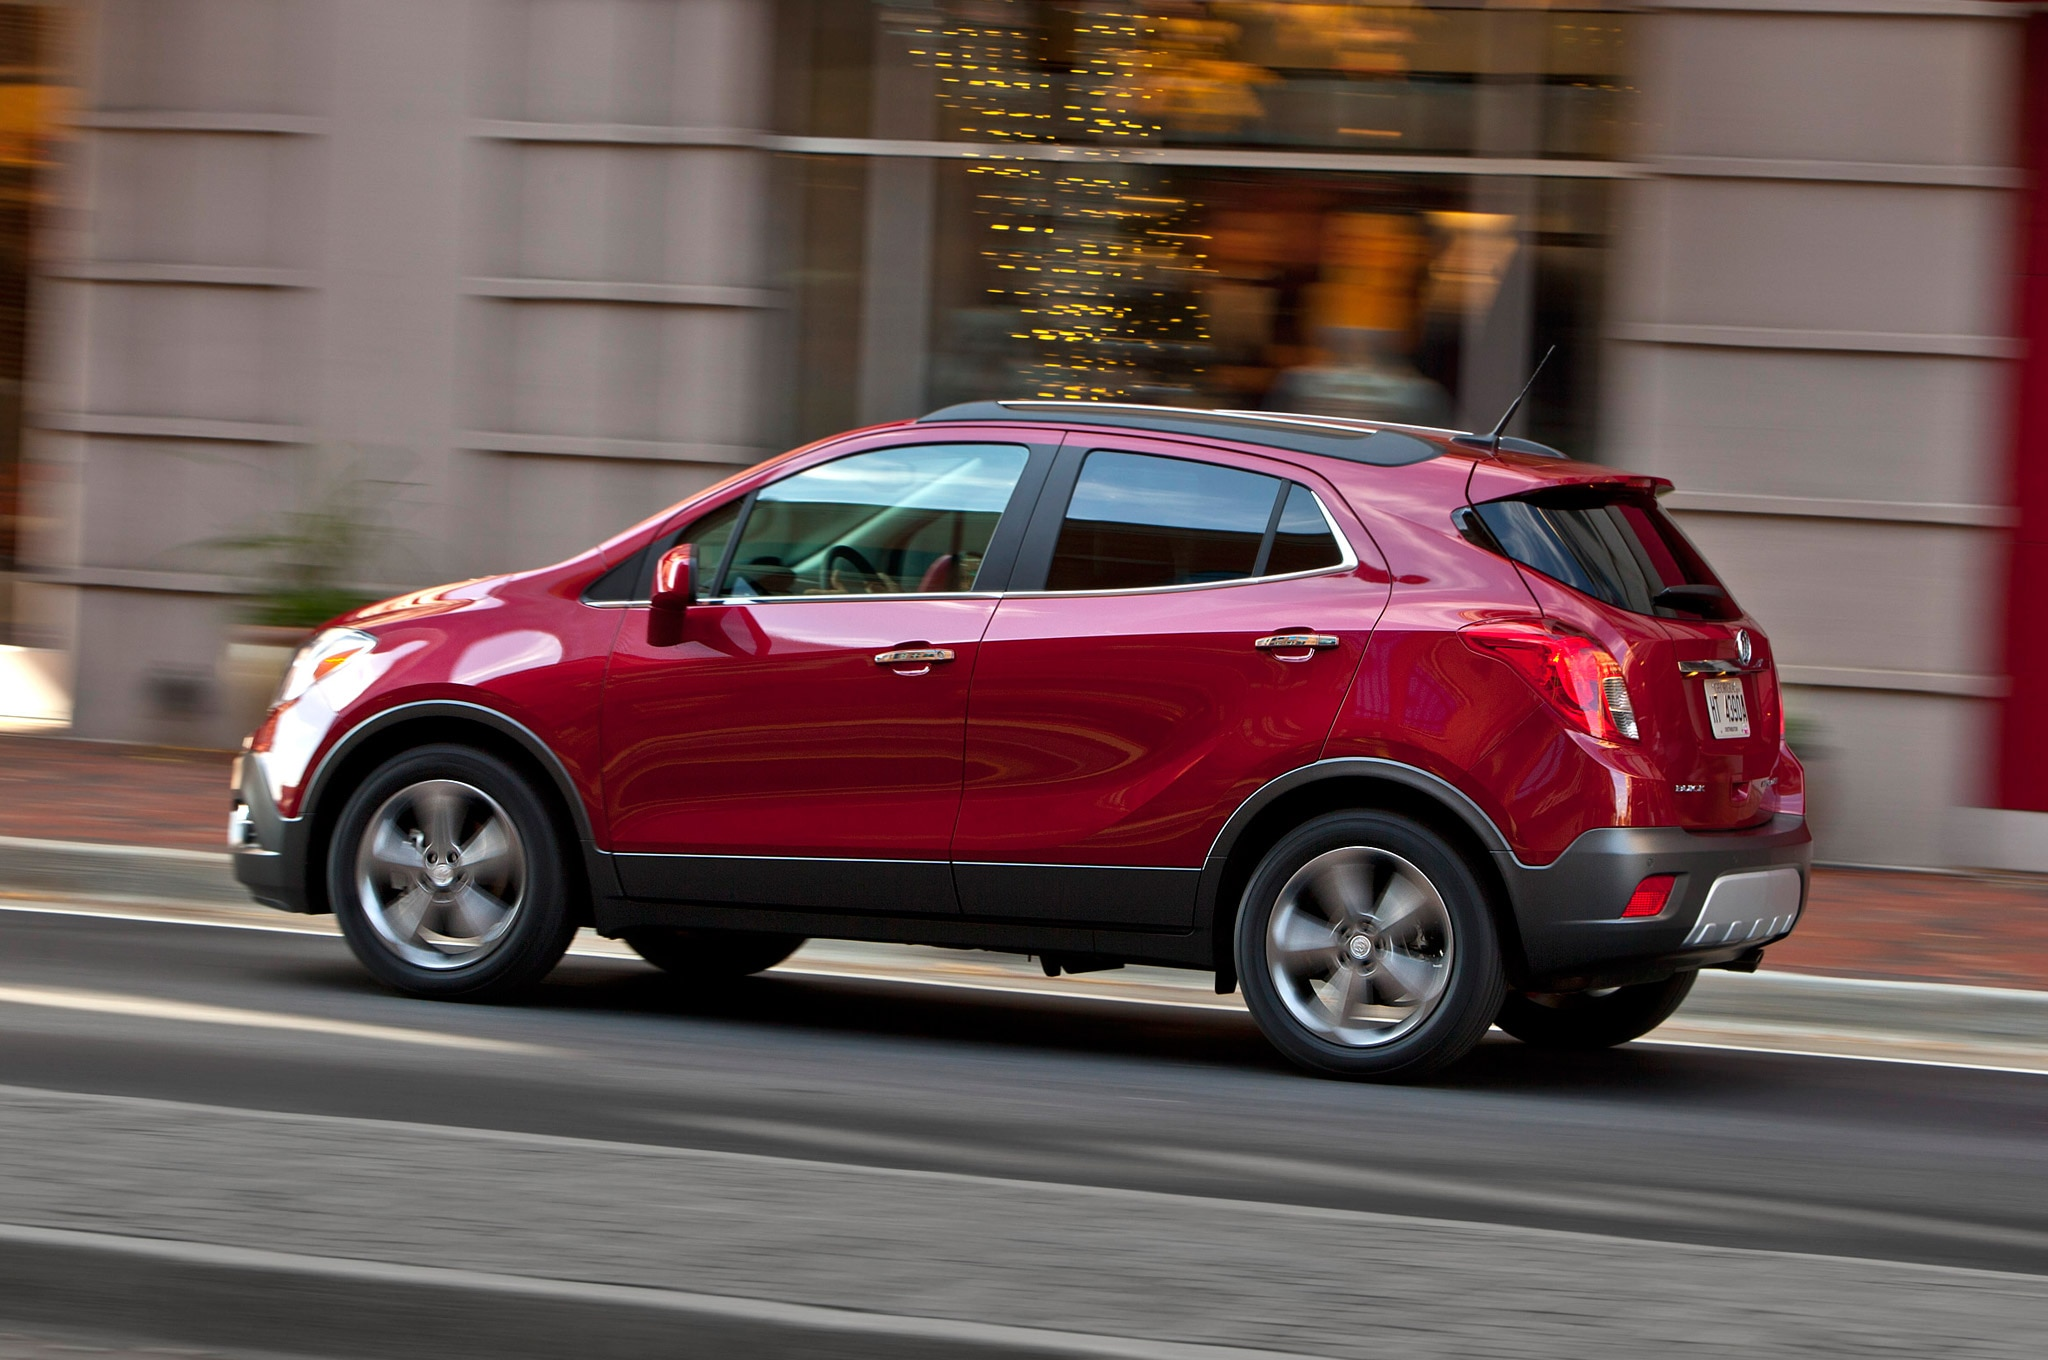 2013 buick encore named iihs top safety pick. Black Bedroom Furniture Sets. Home Design Ideas